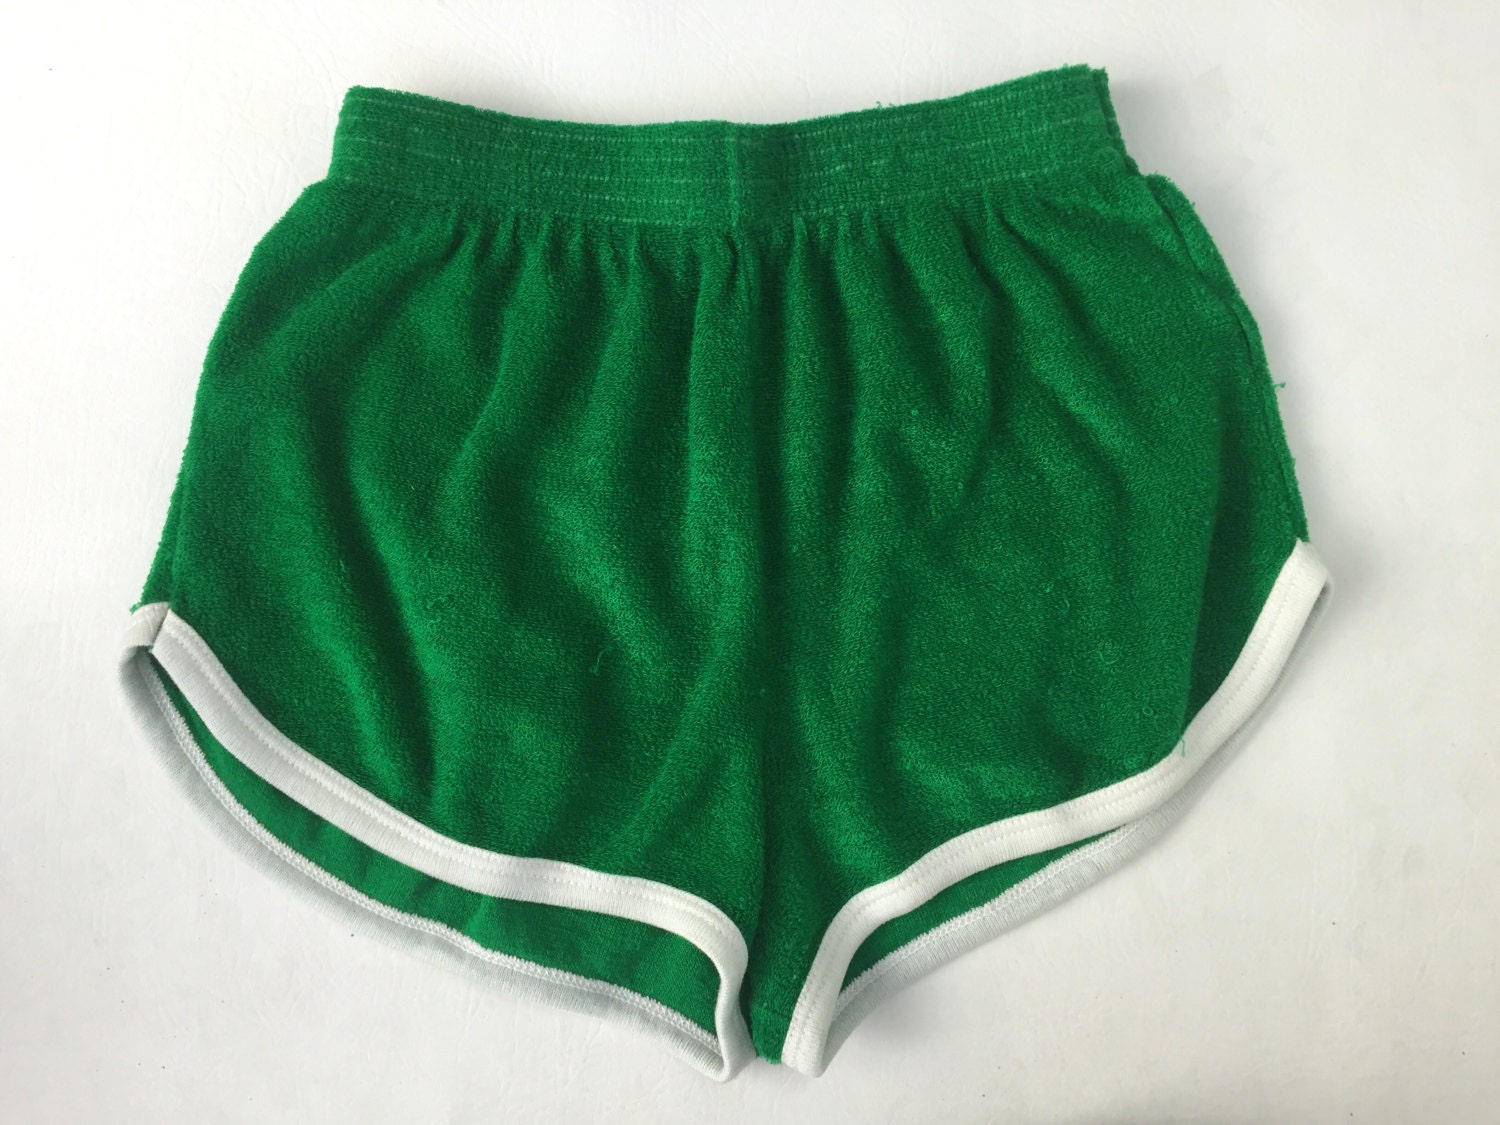 70's Terry Cloth Kelly Green High Waist Gym Shorts - High Waist ...